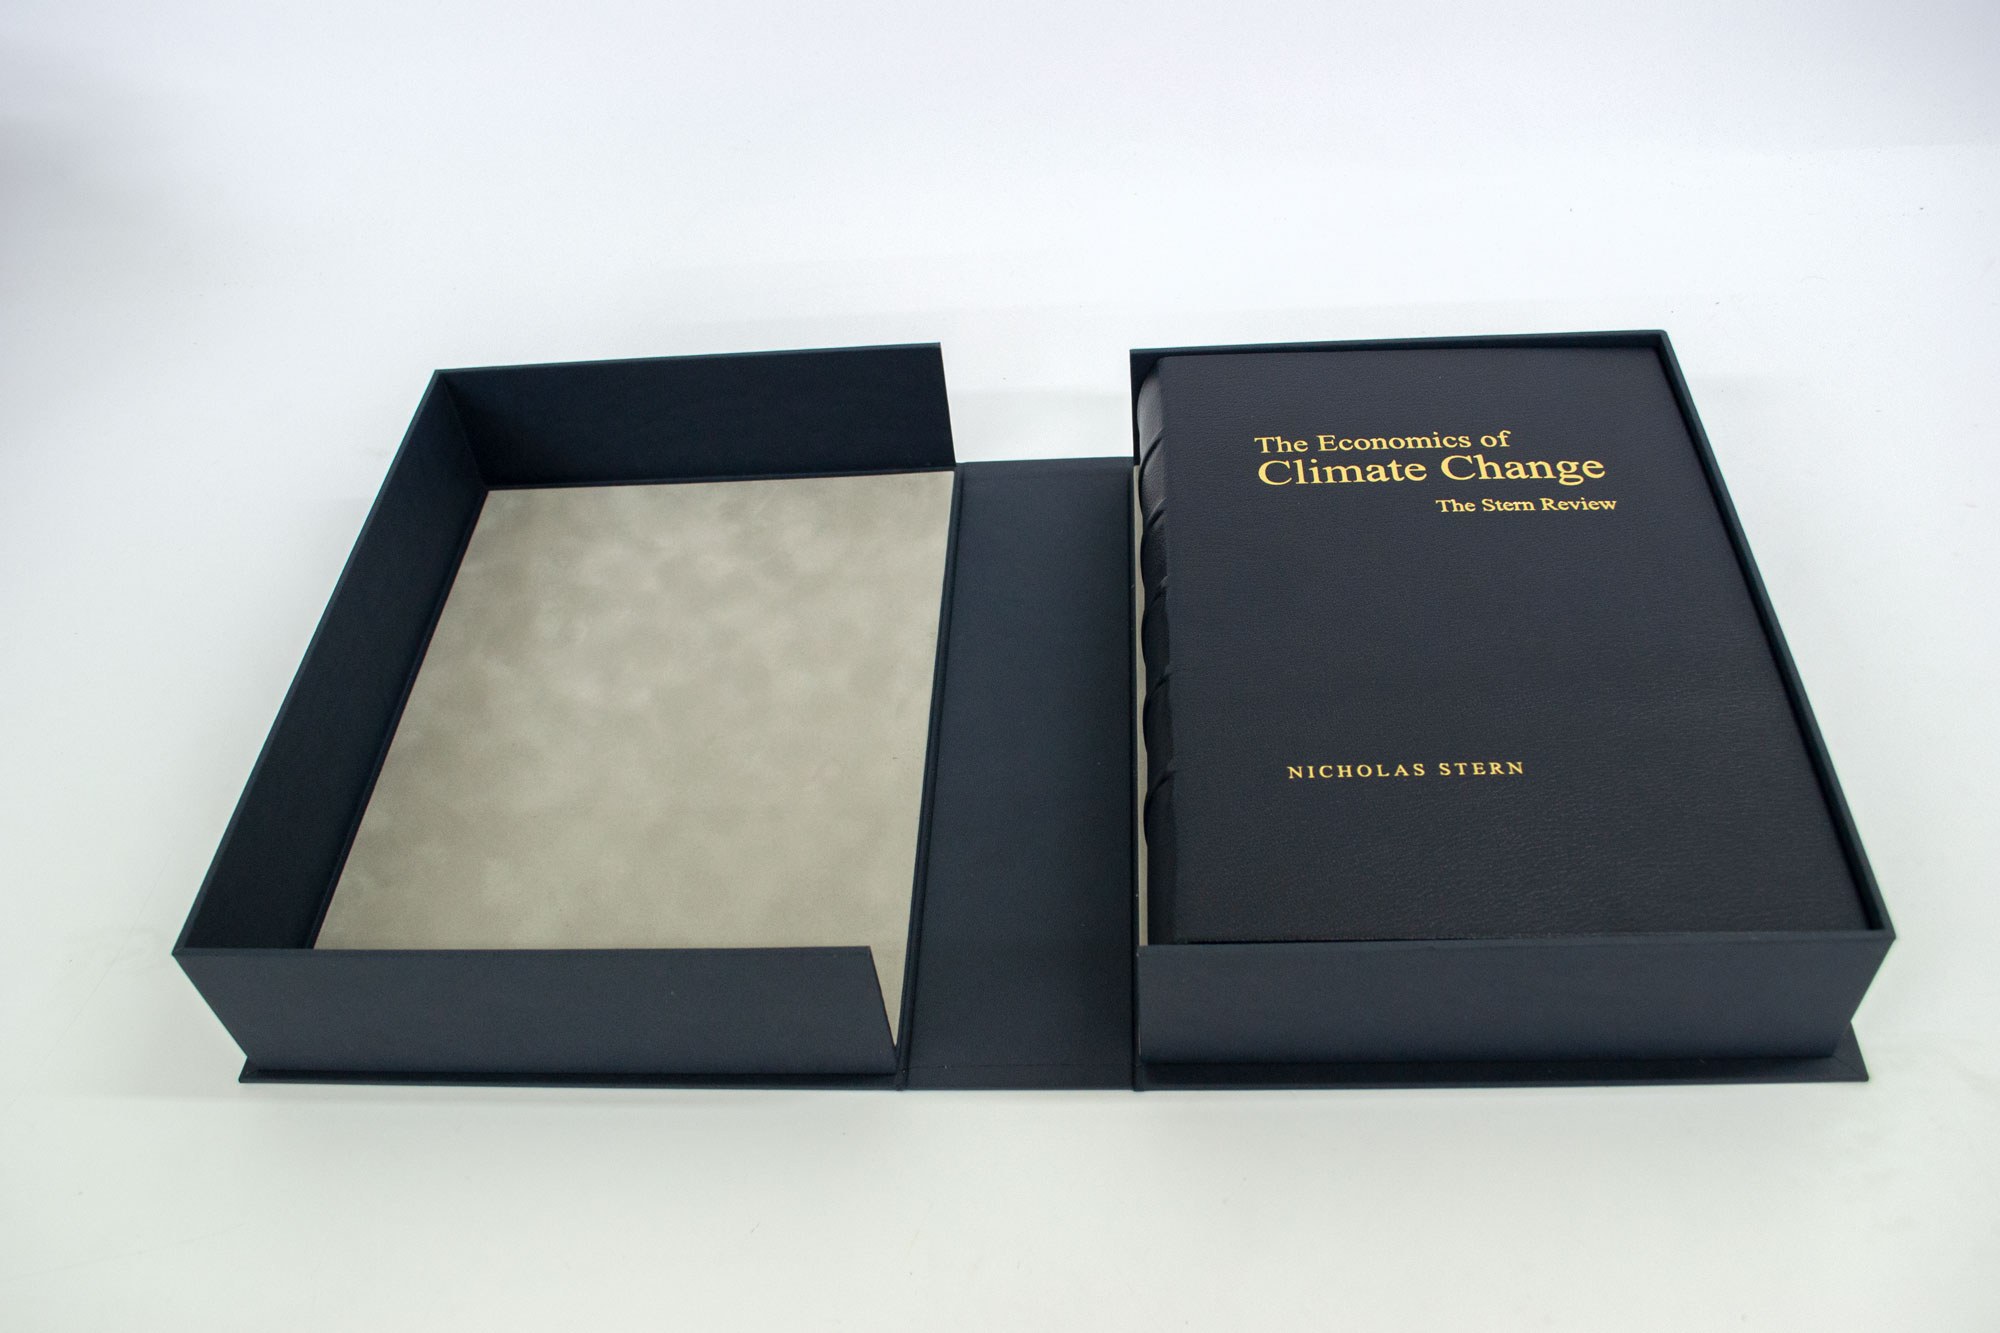 Leather bound book in presentation box